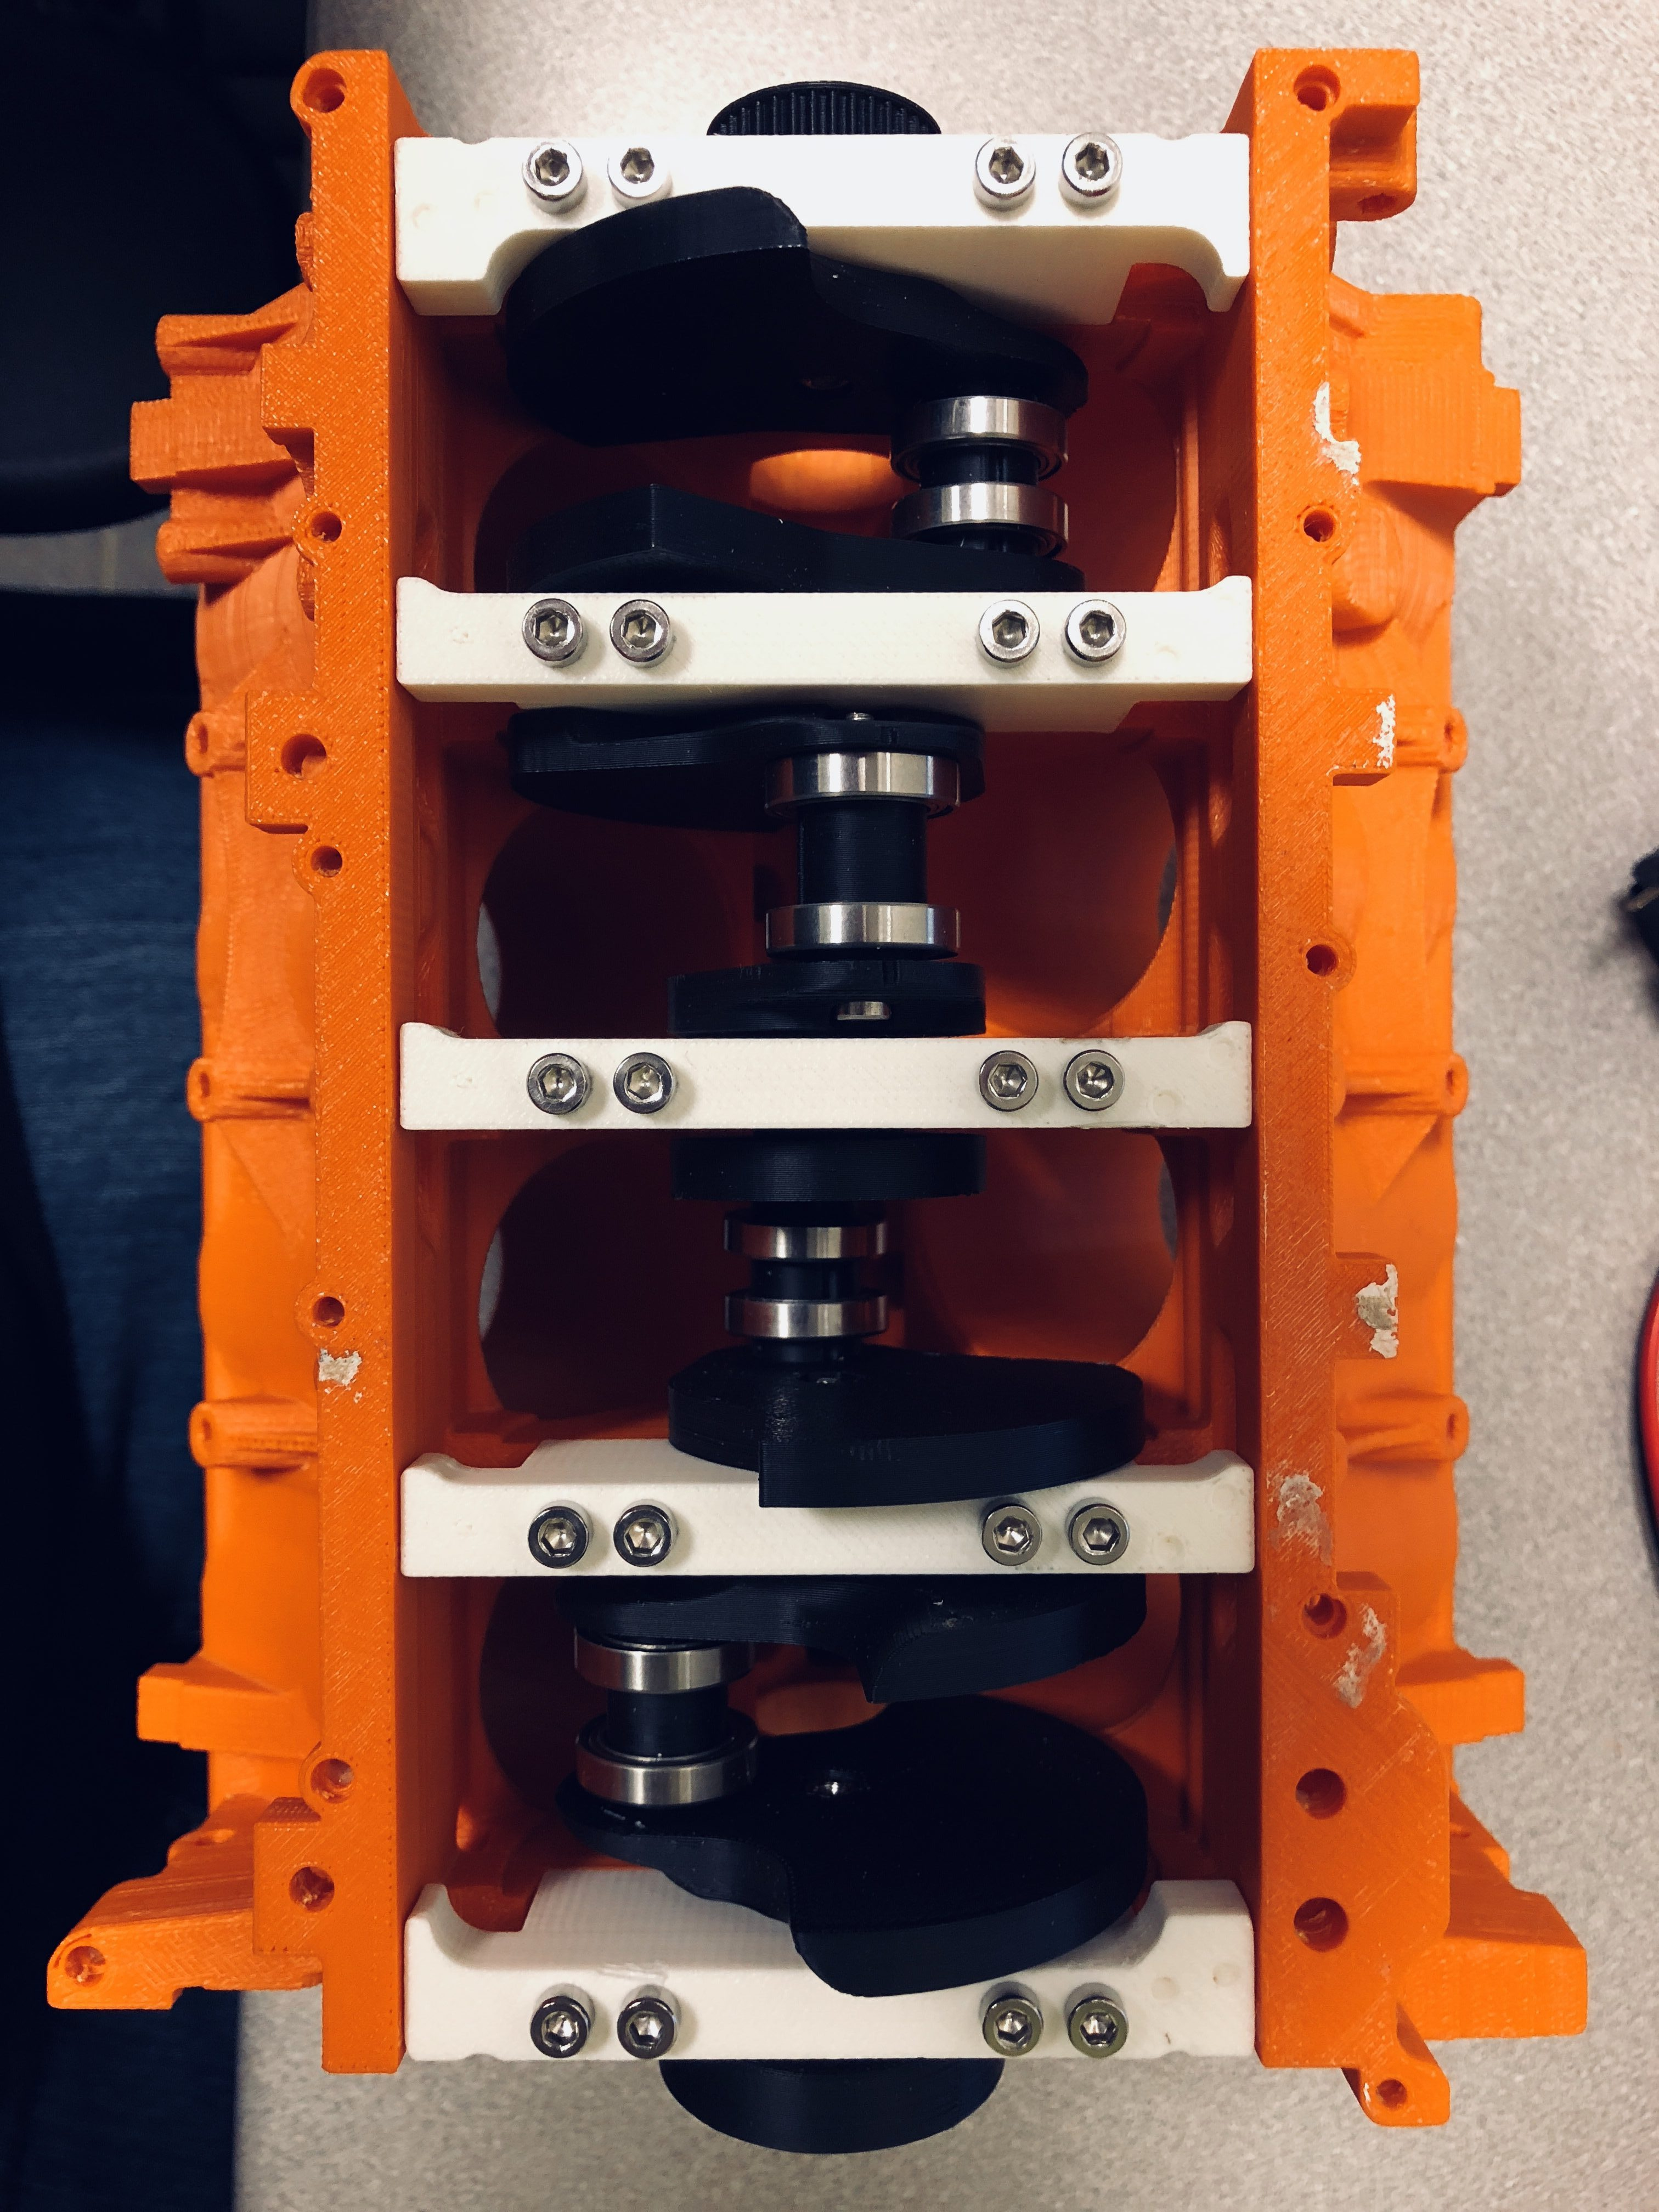 3D Printing V8 Engine Part 2: Initial Assembly of Pistons